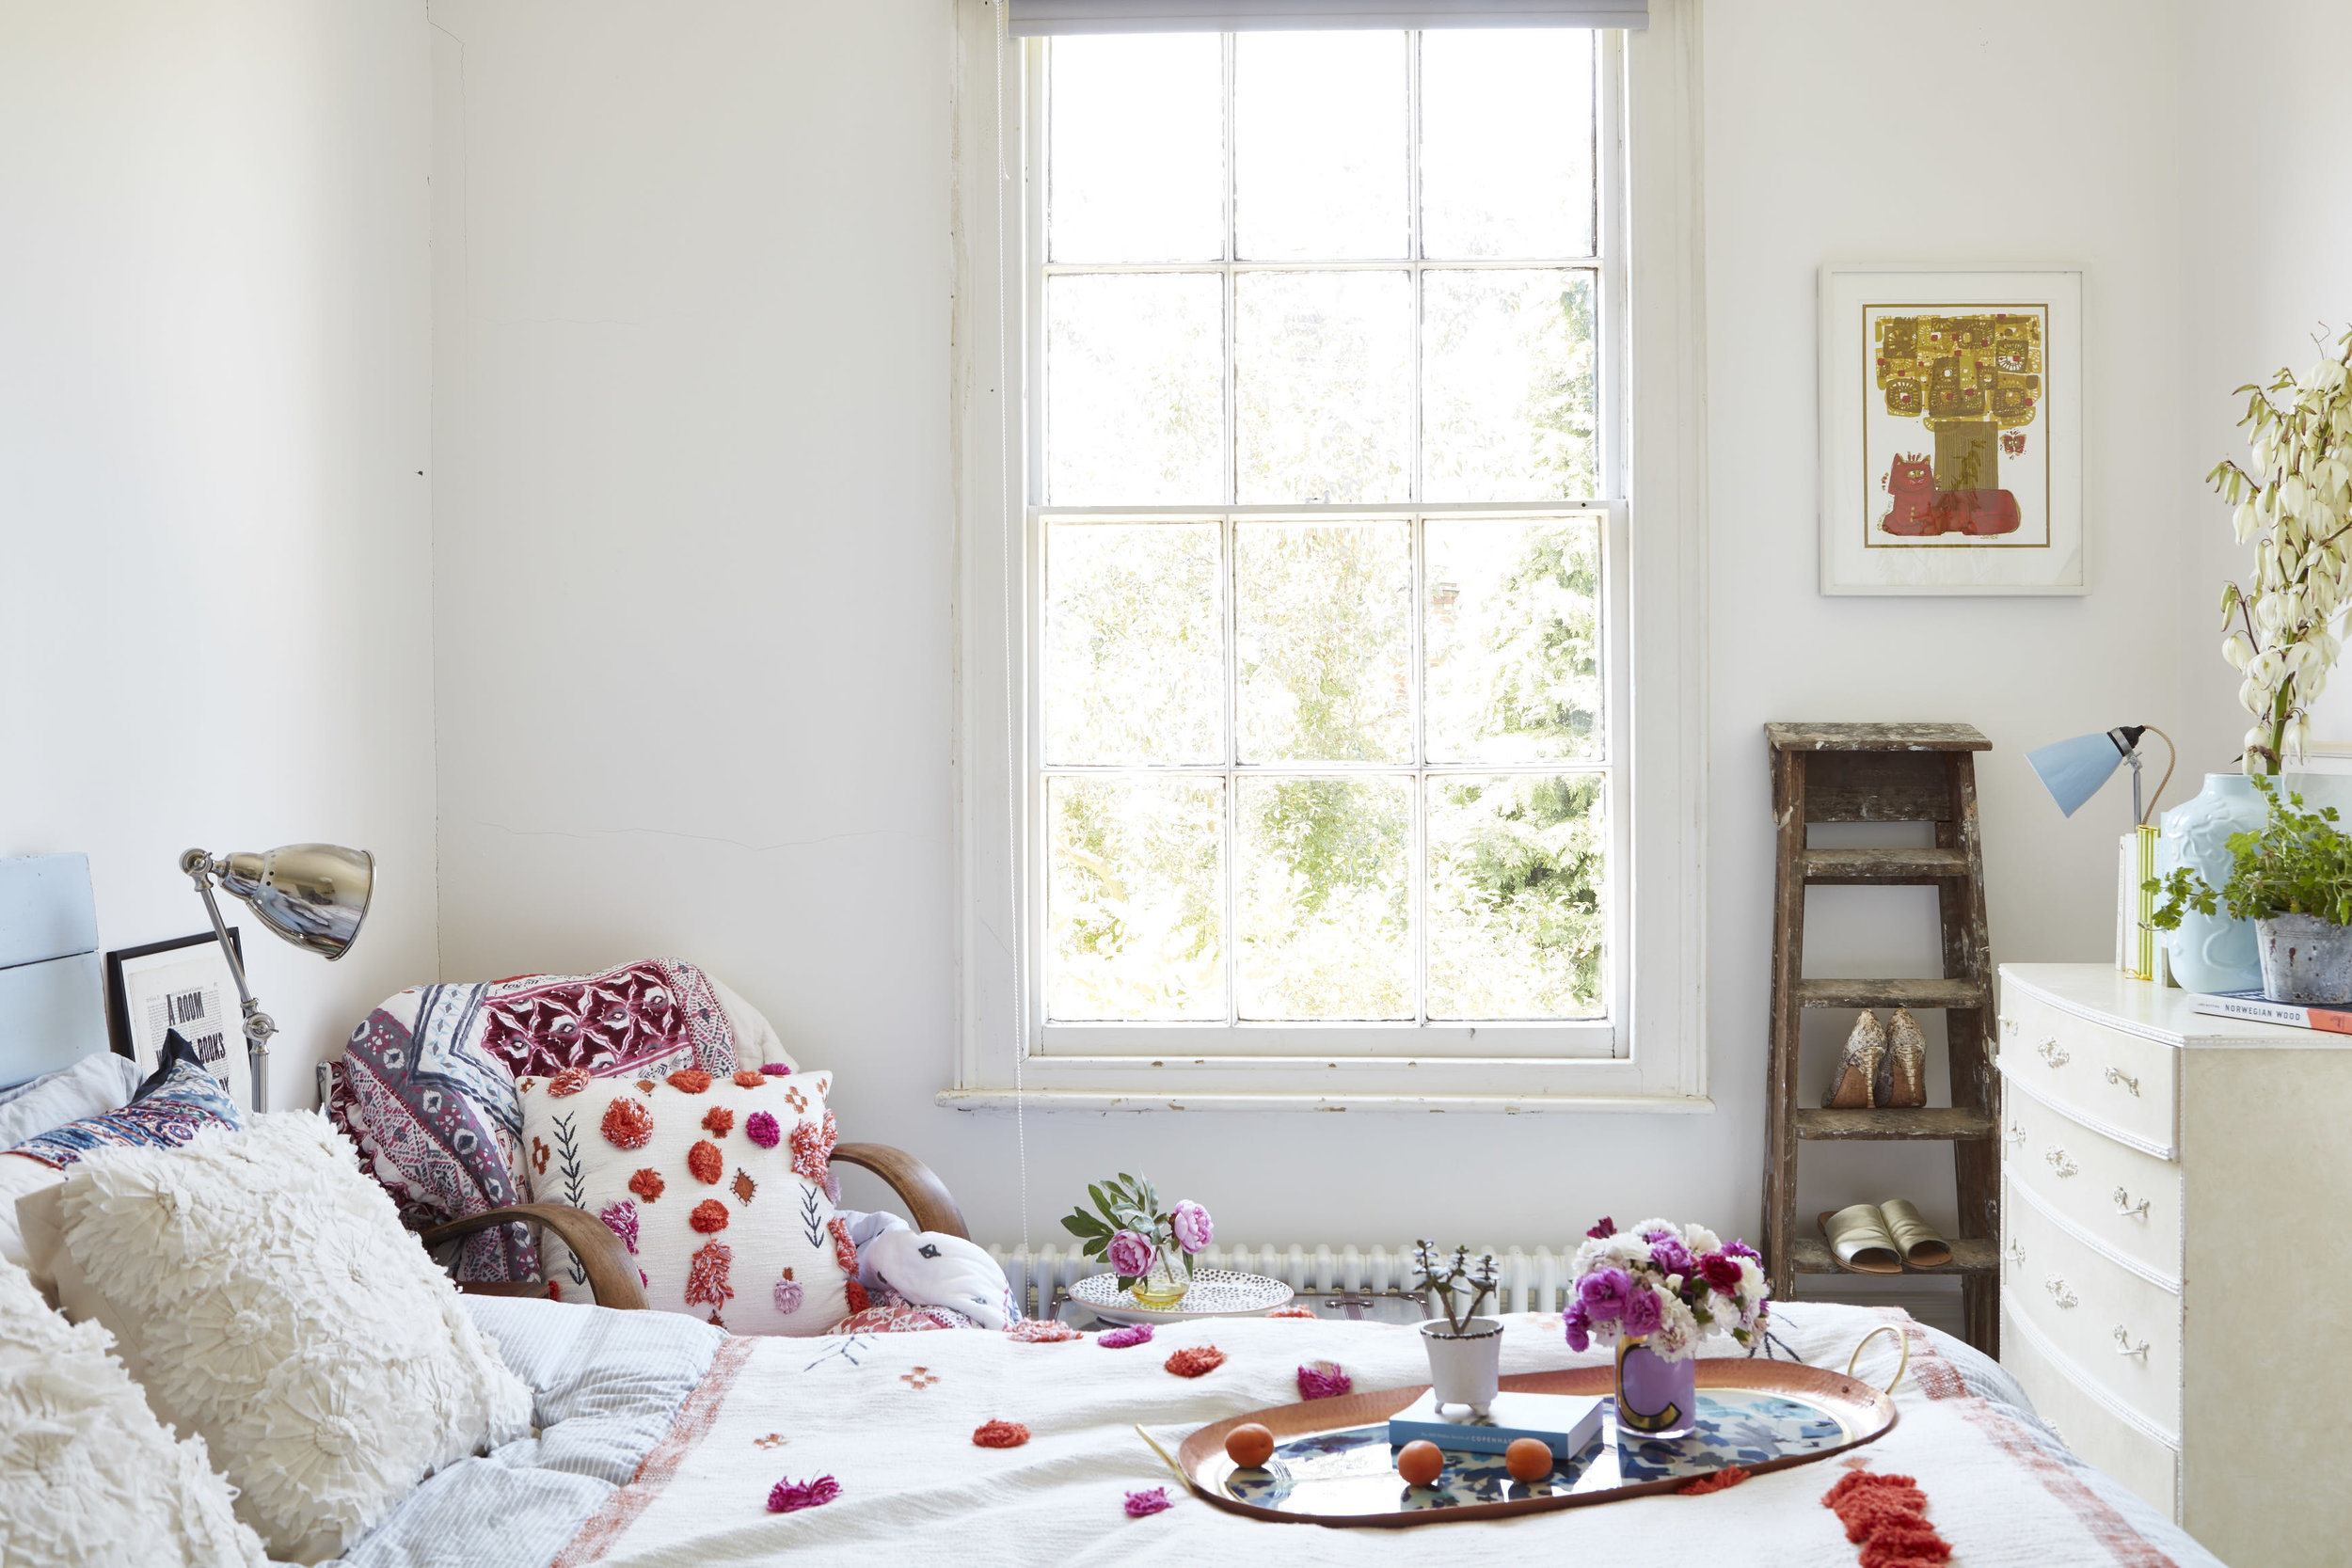 Linen, all Neptune. Lamp,  Ikea.  Cup,  Anthropologie . Headboard painted in Bluebell by  Bert and May.  Quilt, cushions and throws, all Anthropologie. Walls are painted in Strong White by  Farrow and Ball.